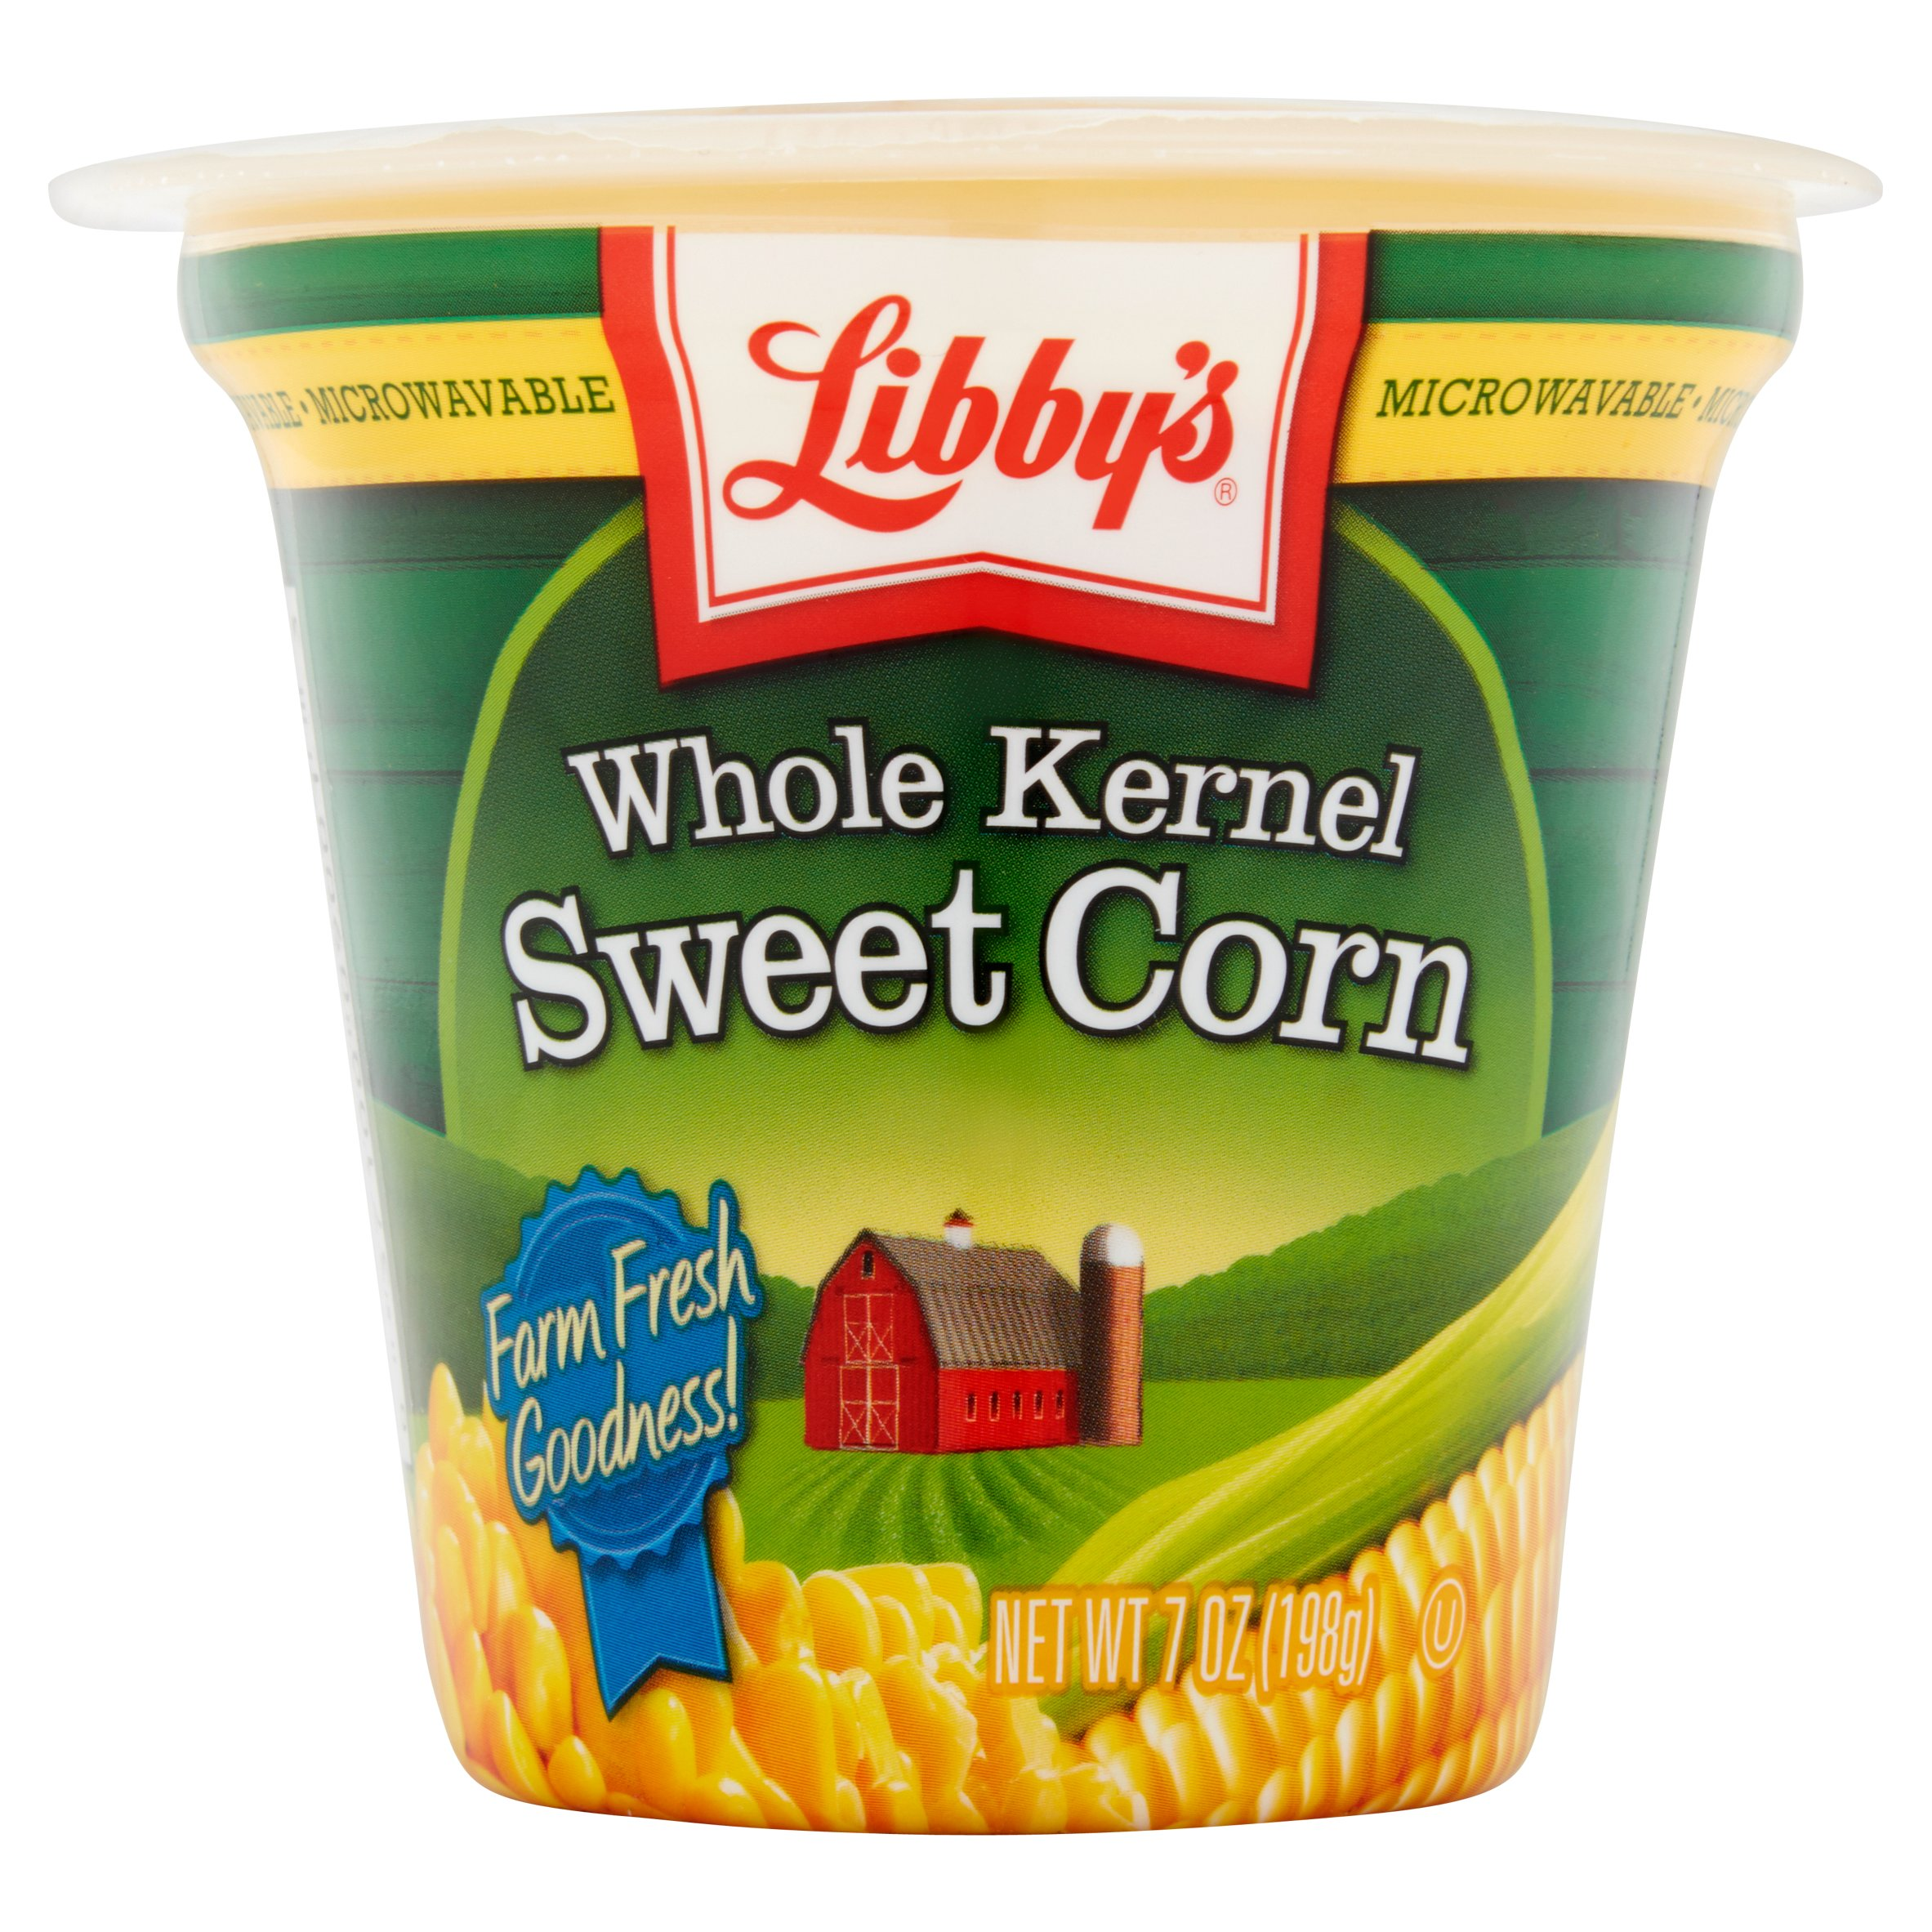 Libby's Whole Kernel Sweet Corn 7 oz